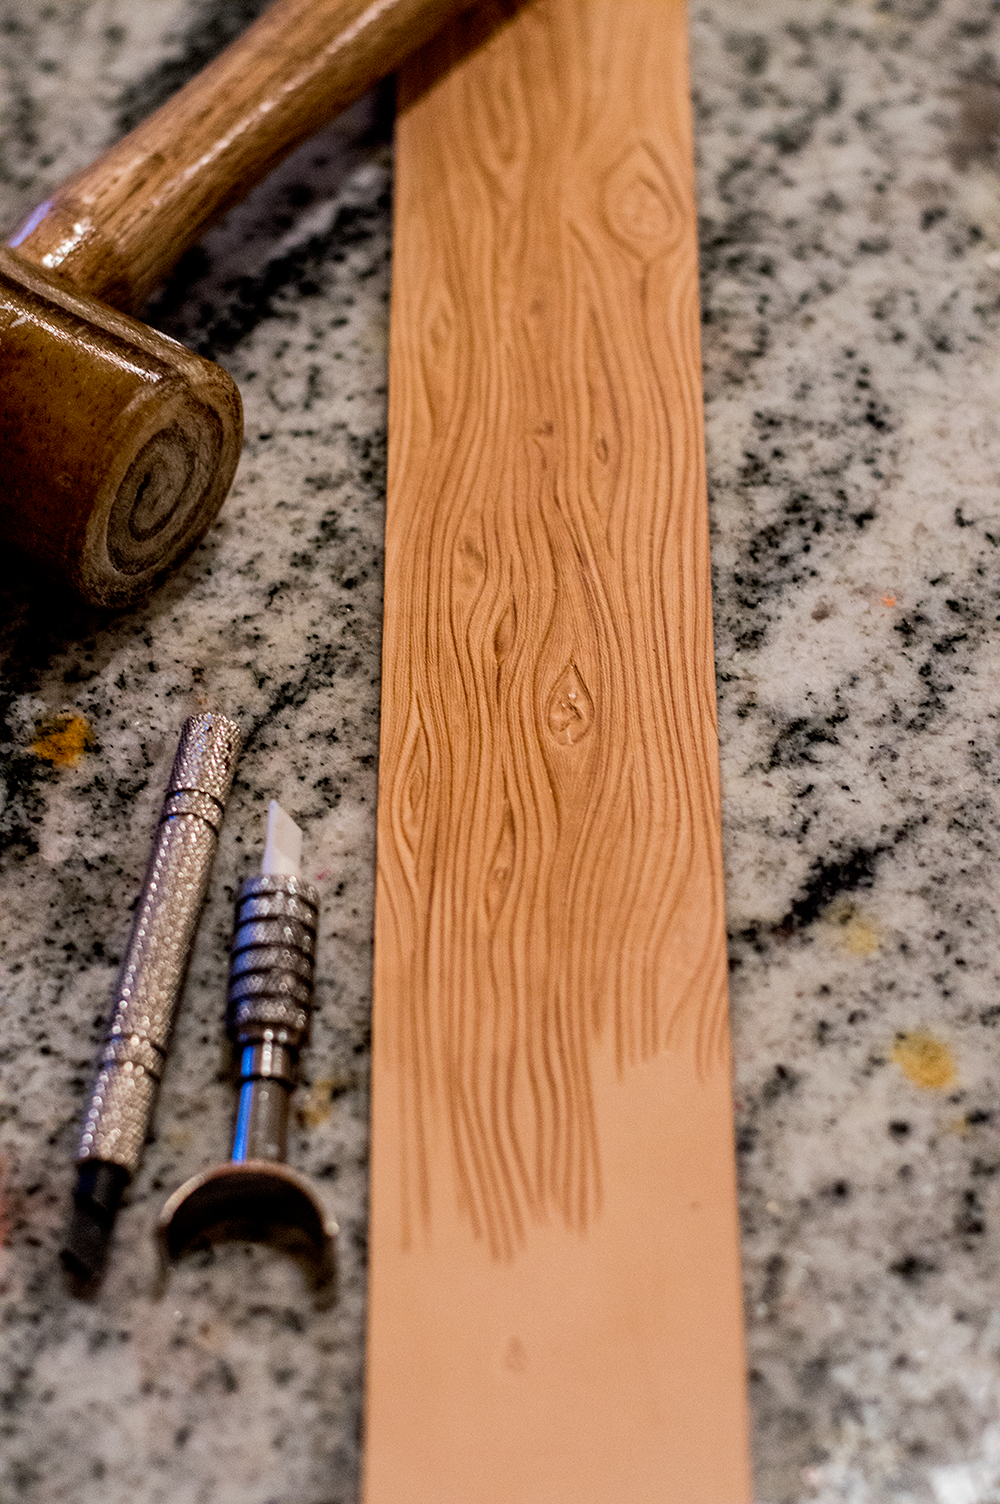 Traditional saddle making tools are used to carve and tool our 3-dimensional designs.